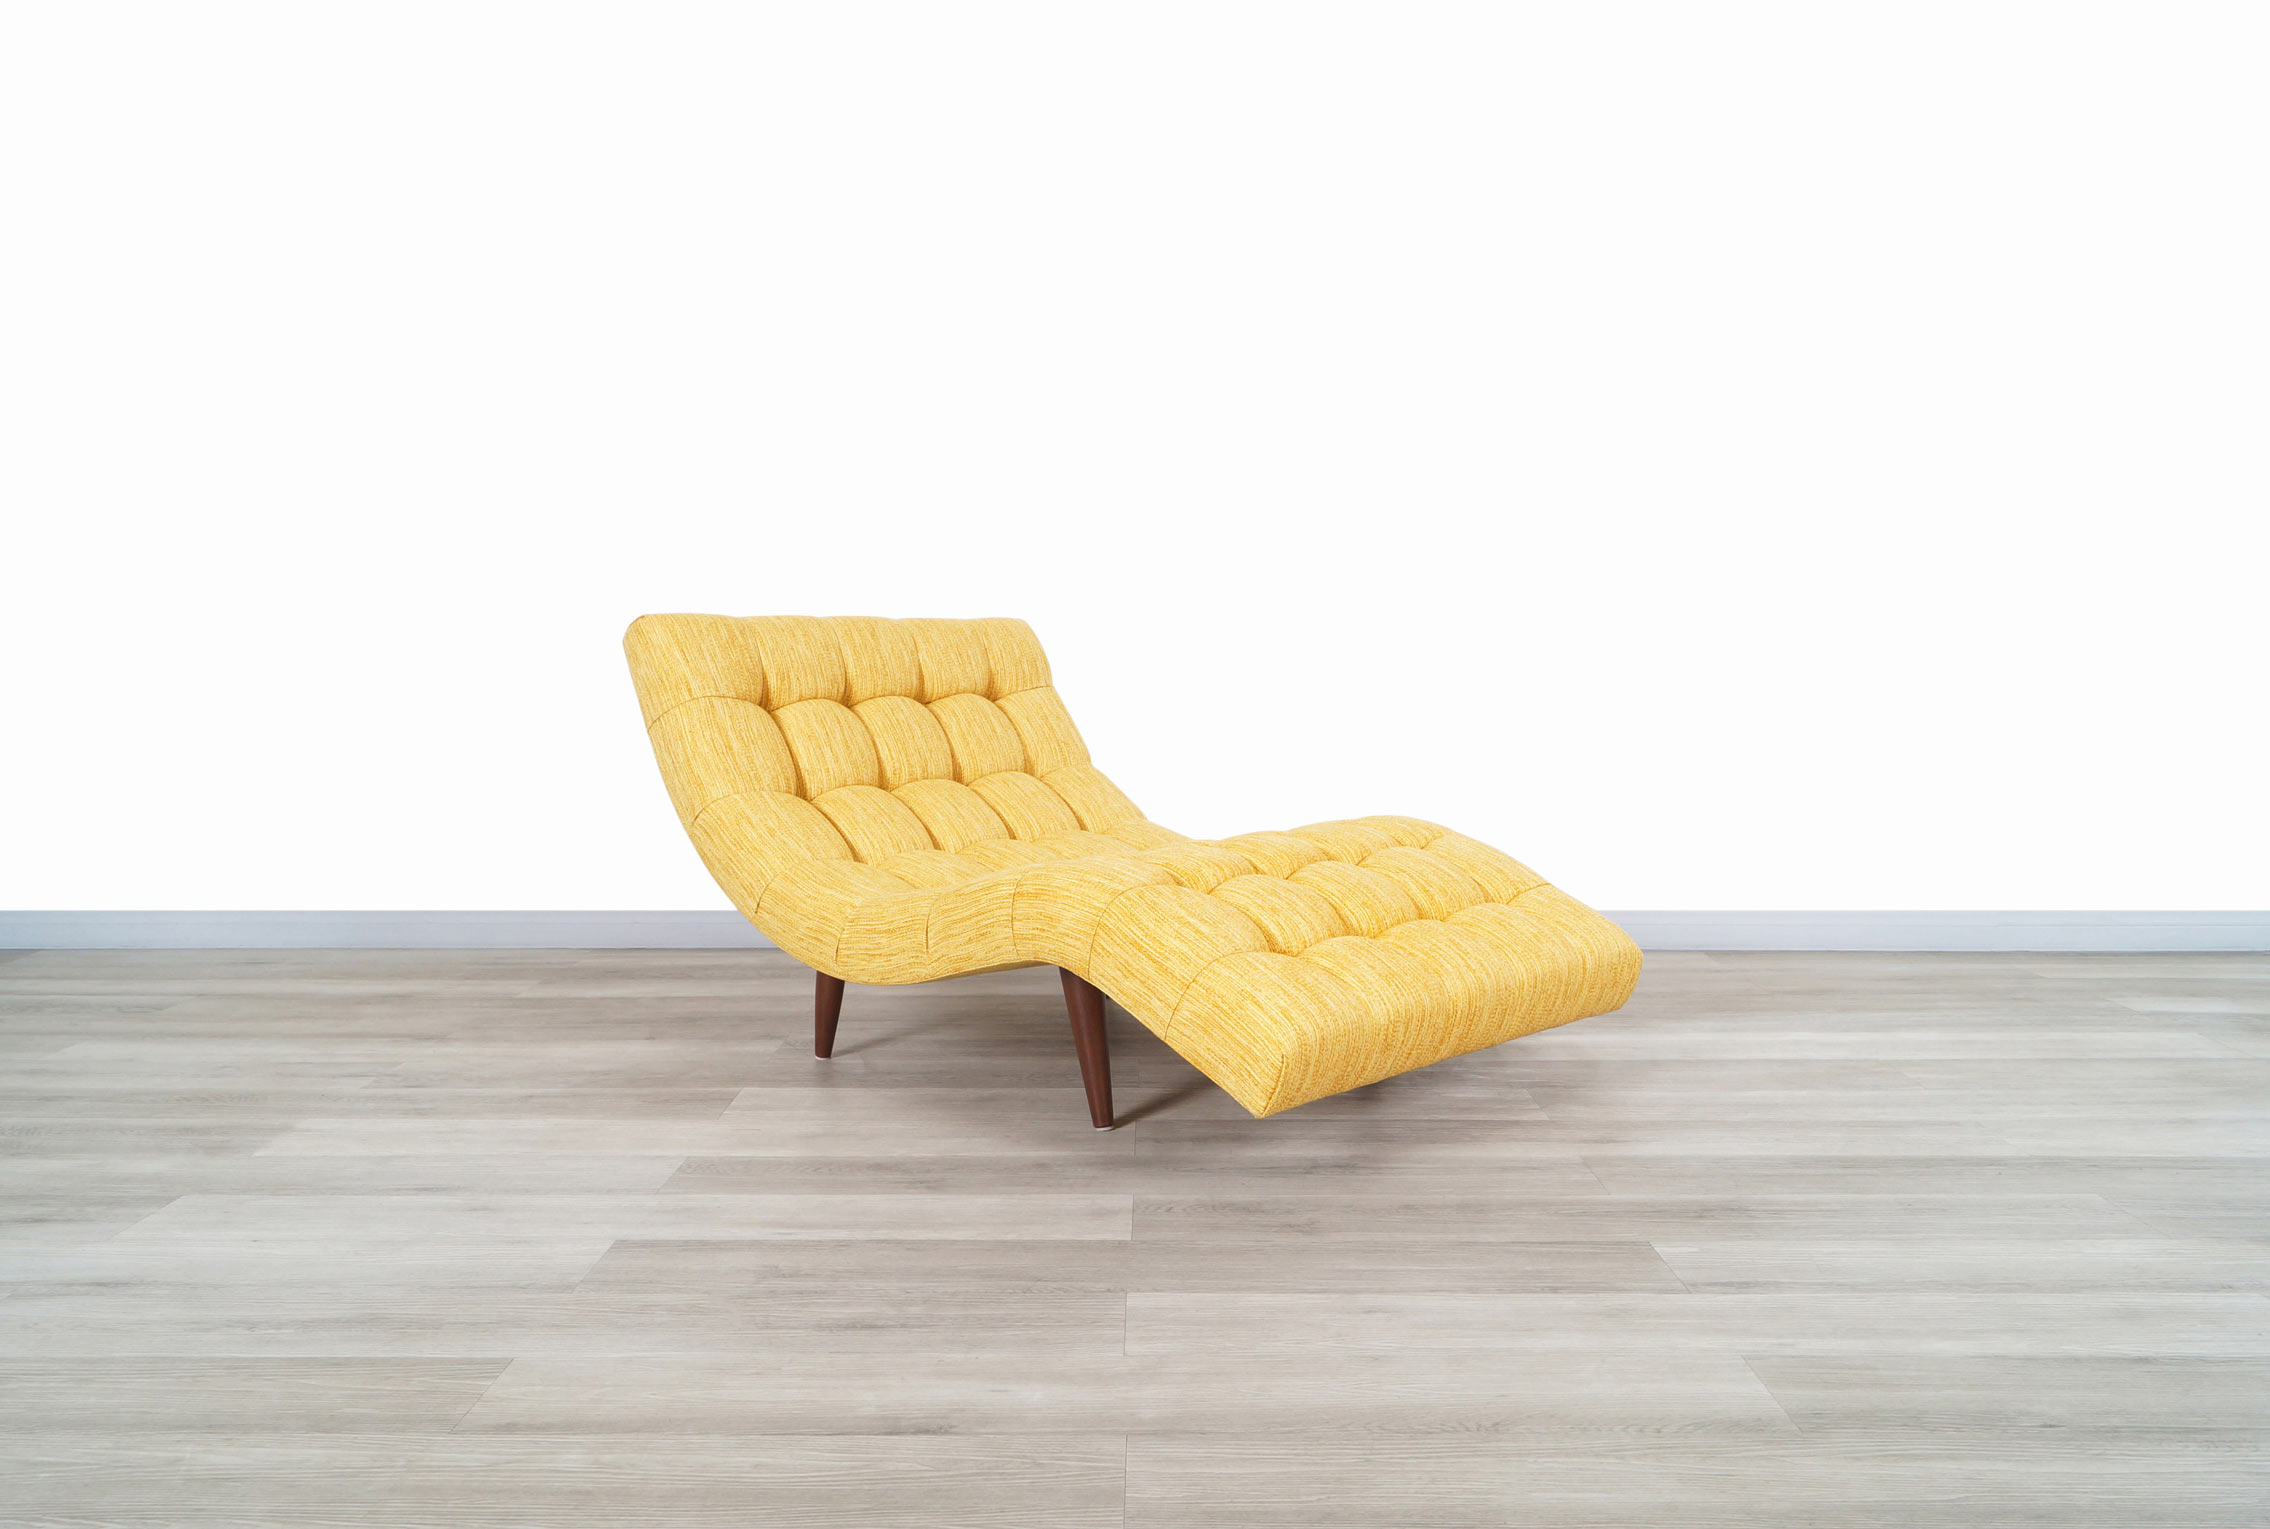 Mid Century Wave Chaise Lounge Chair by Adrian Pearsall